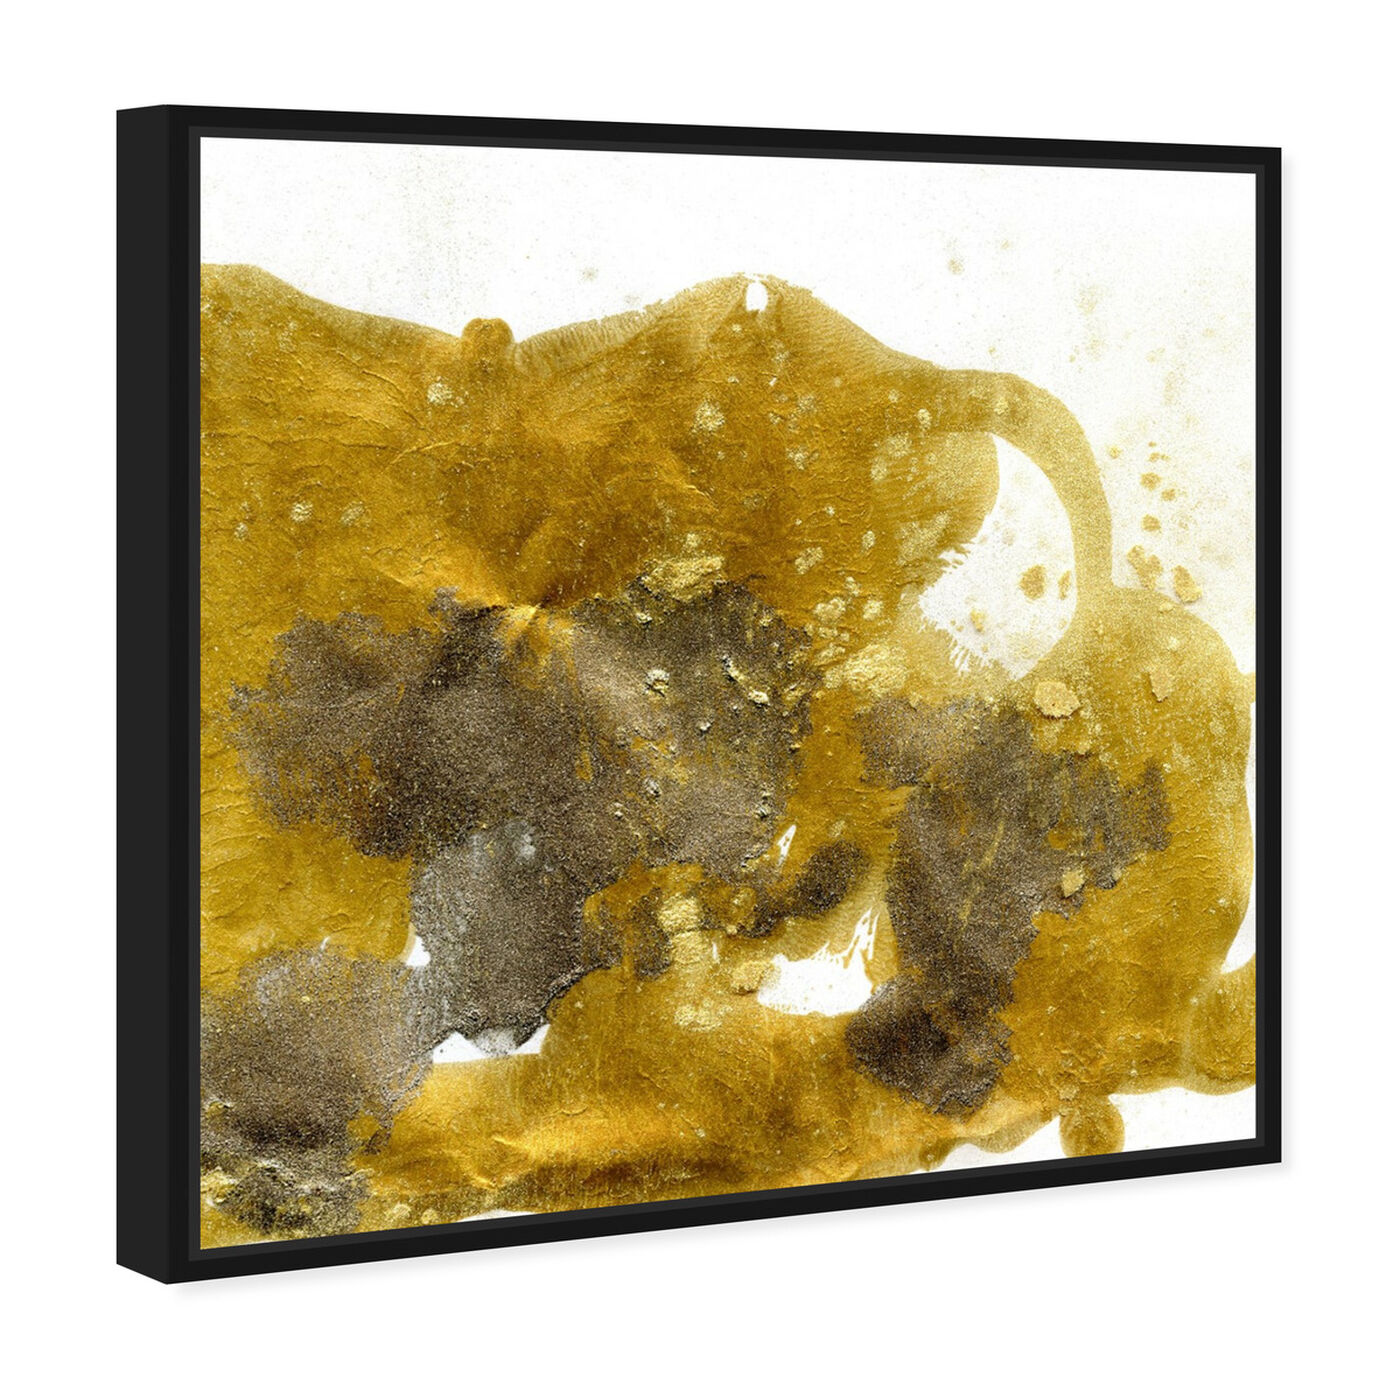 Angled view of Gold Dust - Signature Collection featuring abstract and textures art.